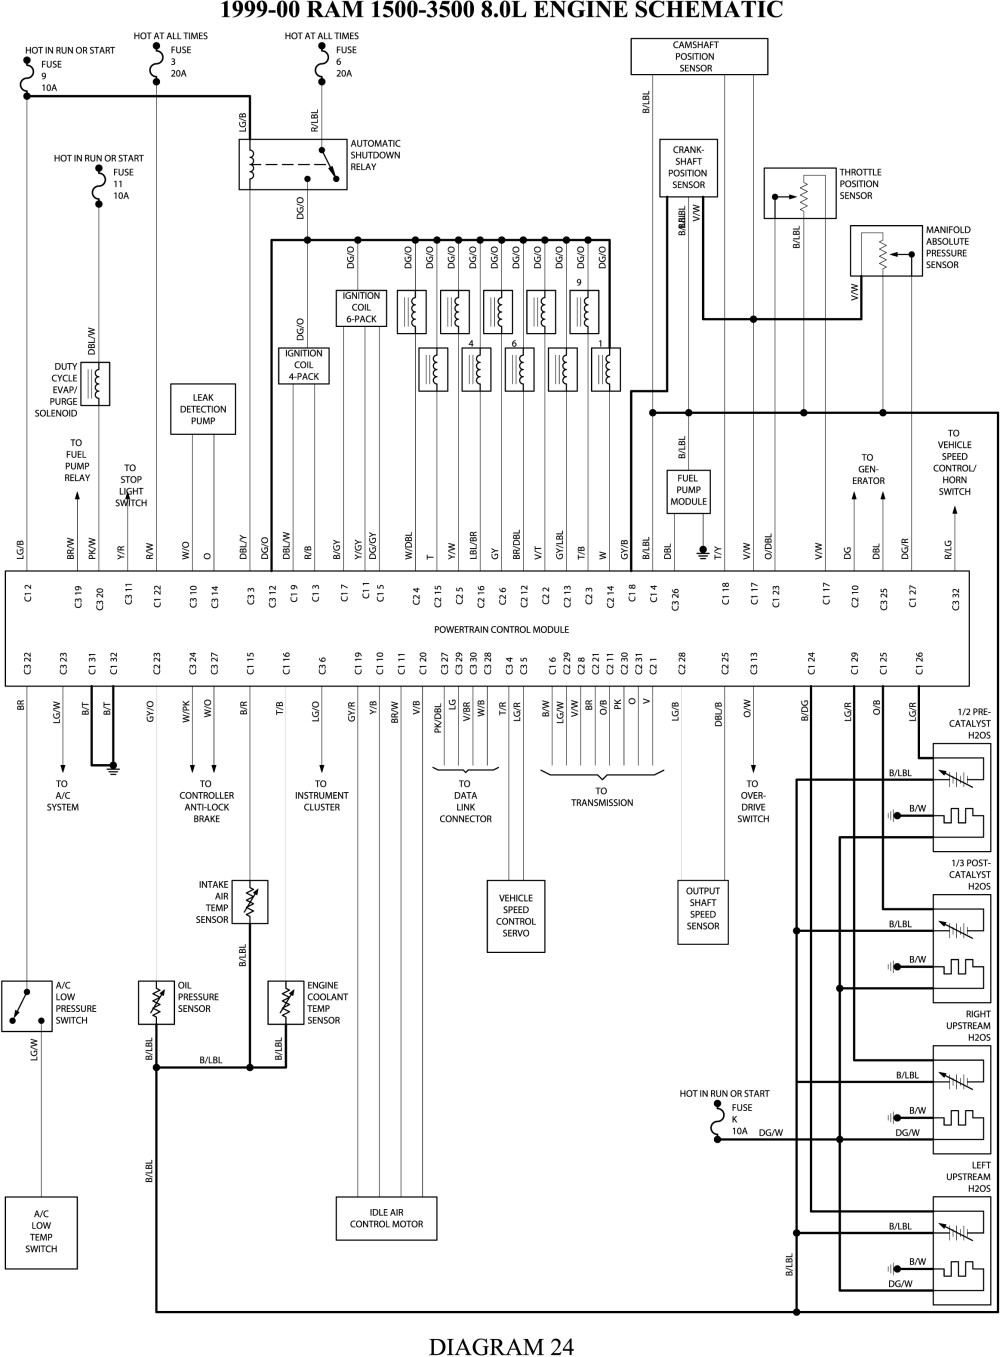 1997 Dodge Ram Van B1500 System Wiring Diagram Download Document